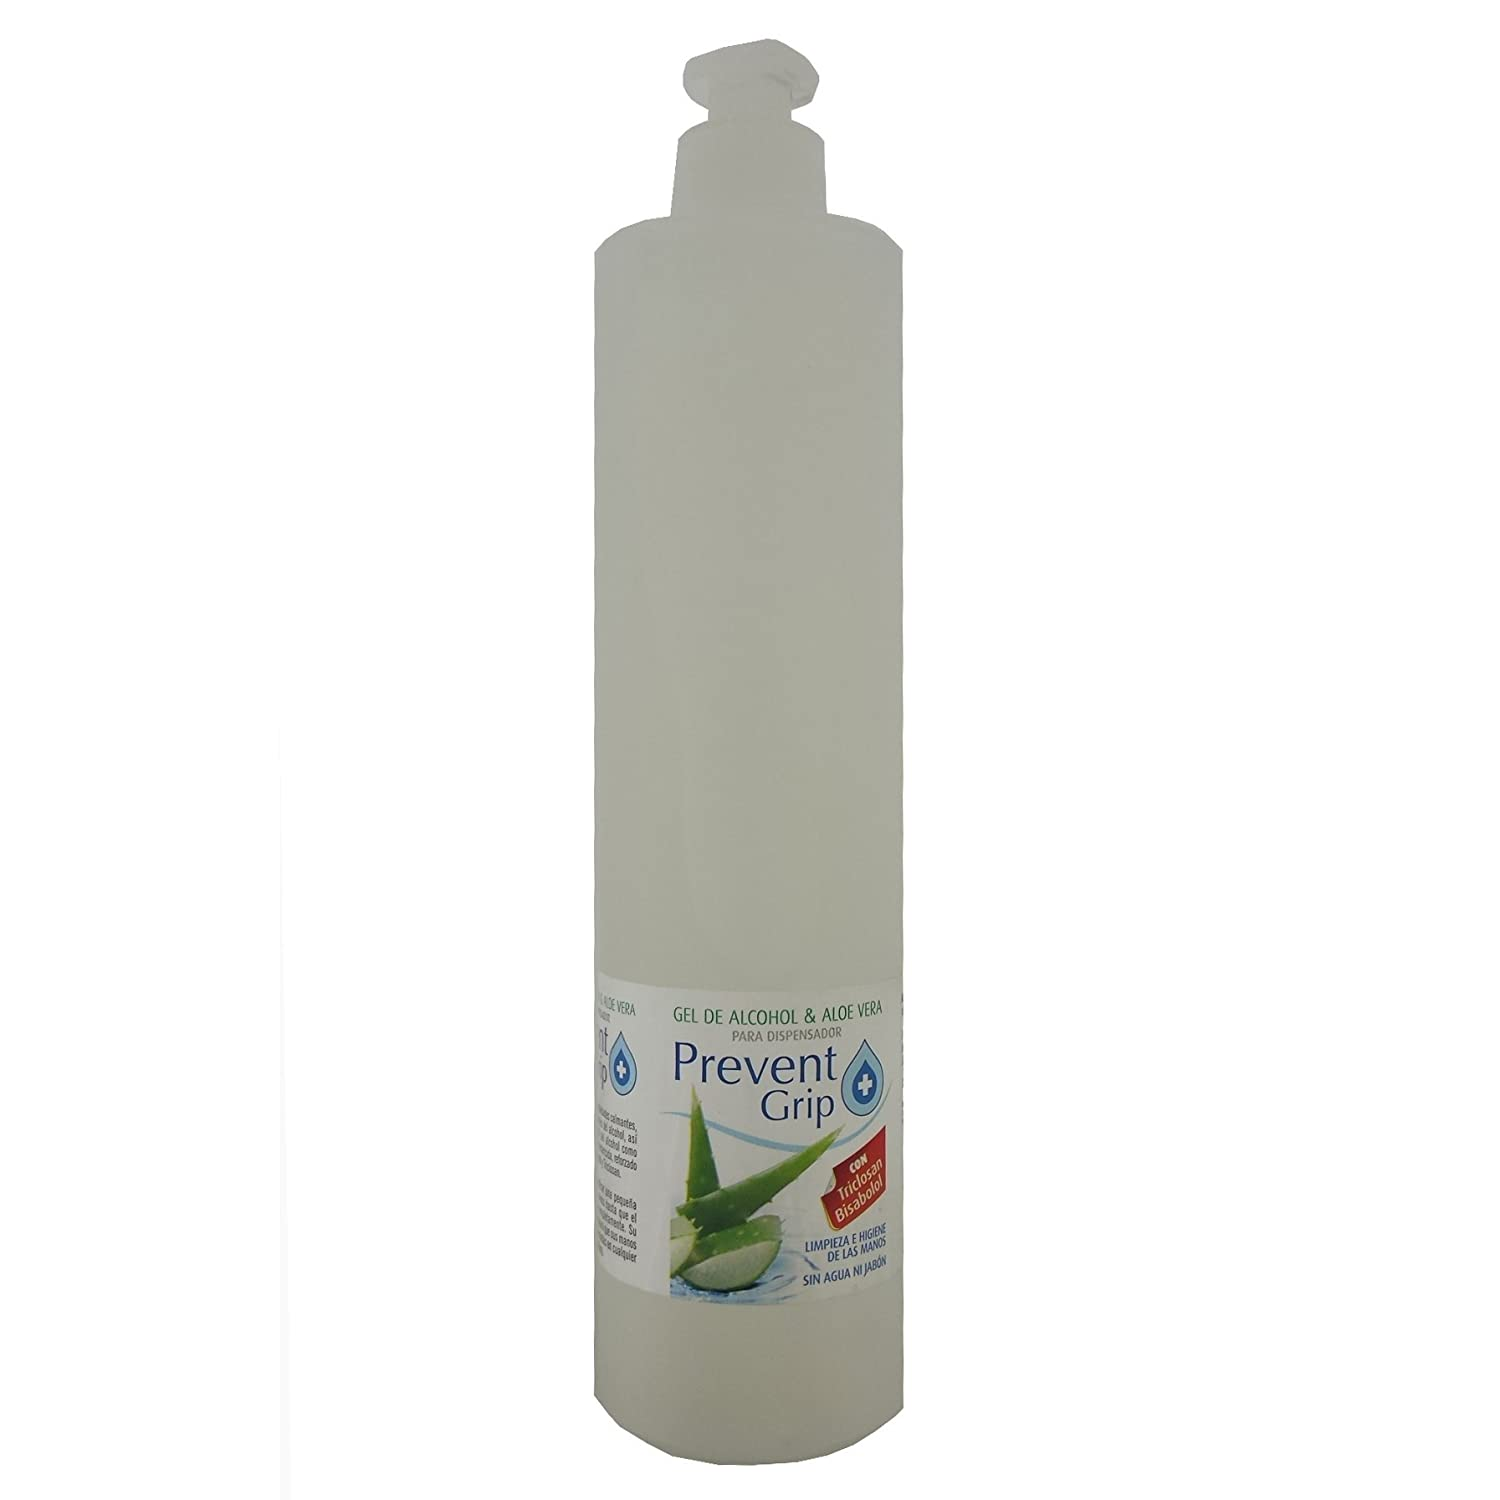 PREVENT GRIP - DISPENSADOR AUTOMÁTICO DE JABÓN LÍQUIDO de 700ml.+ GRATIS 2 envases de gel liquido de 100ml + 2 botellas de gel liquido de 500ml + 4 baterias ...